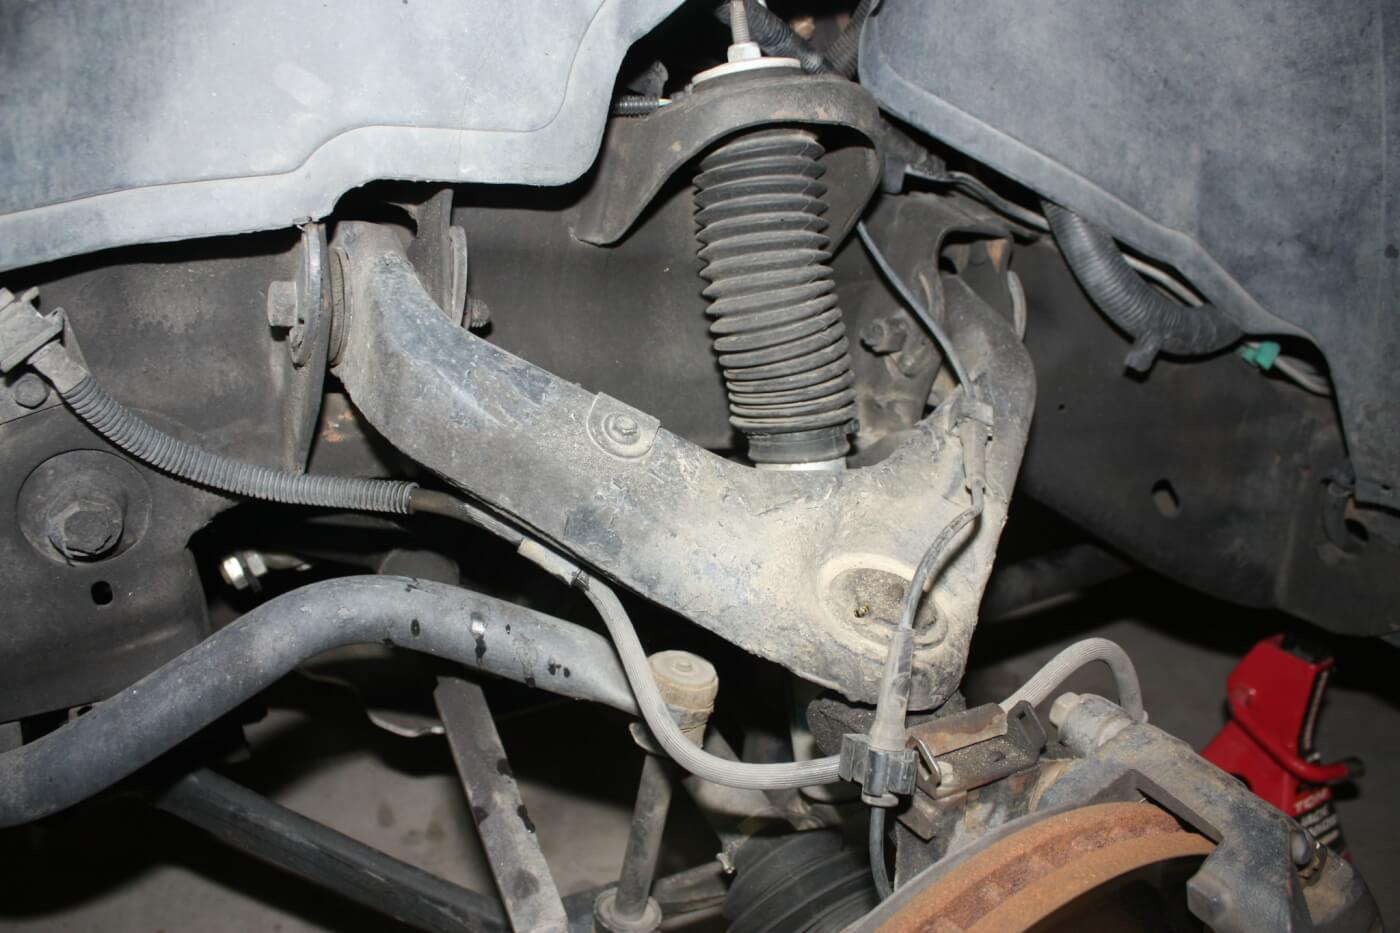 2. With the GM independent front suspension, leveling the front of the truck can be easily achieved by adjusting the factory torsion bars. But this changes the angle of the upper control arm and can lead to premature ball joint wear. Replacing the UCA with the beefier Kryptonite unit adds strength and improves ride quality.